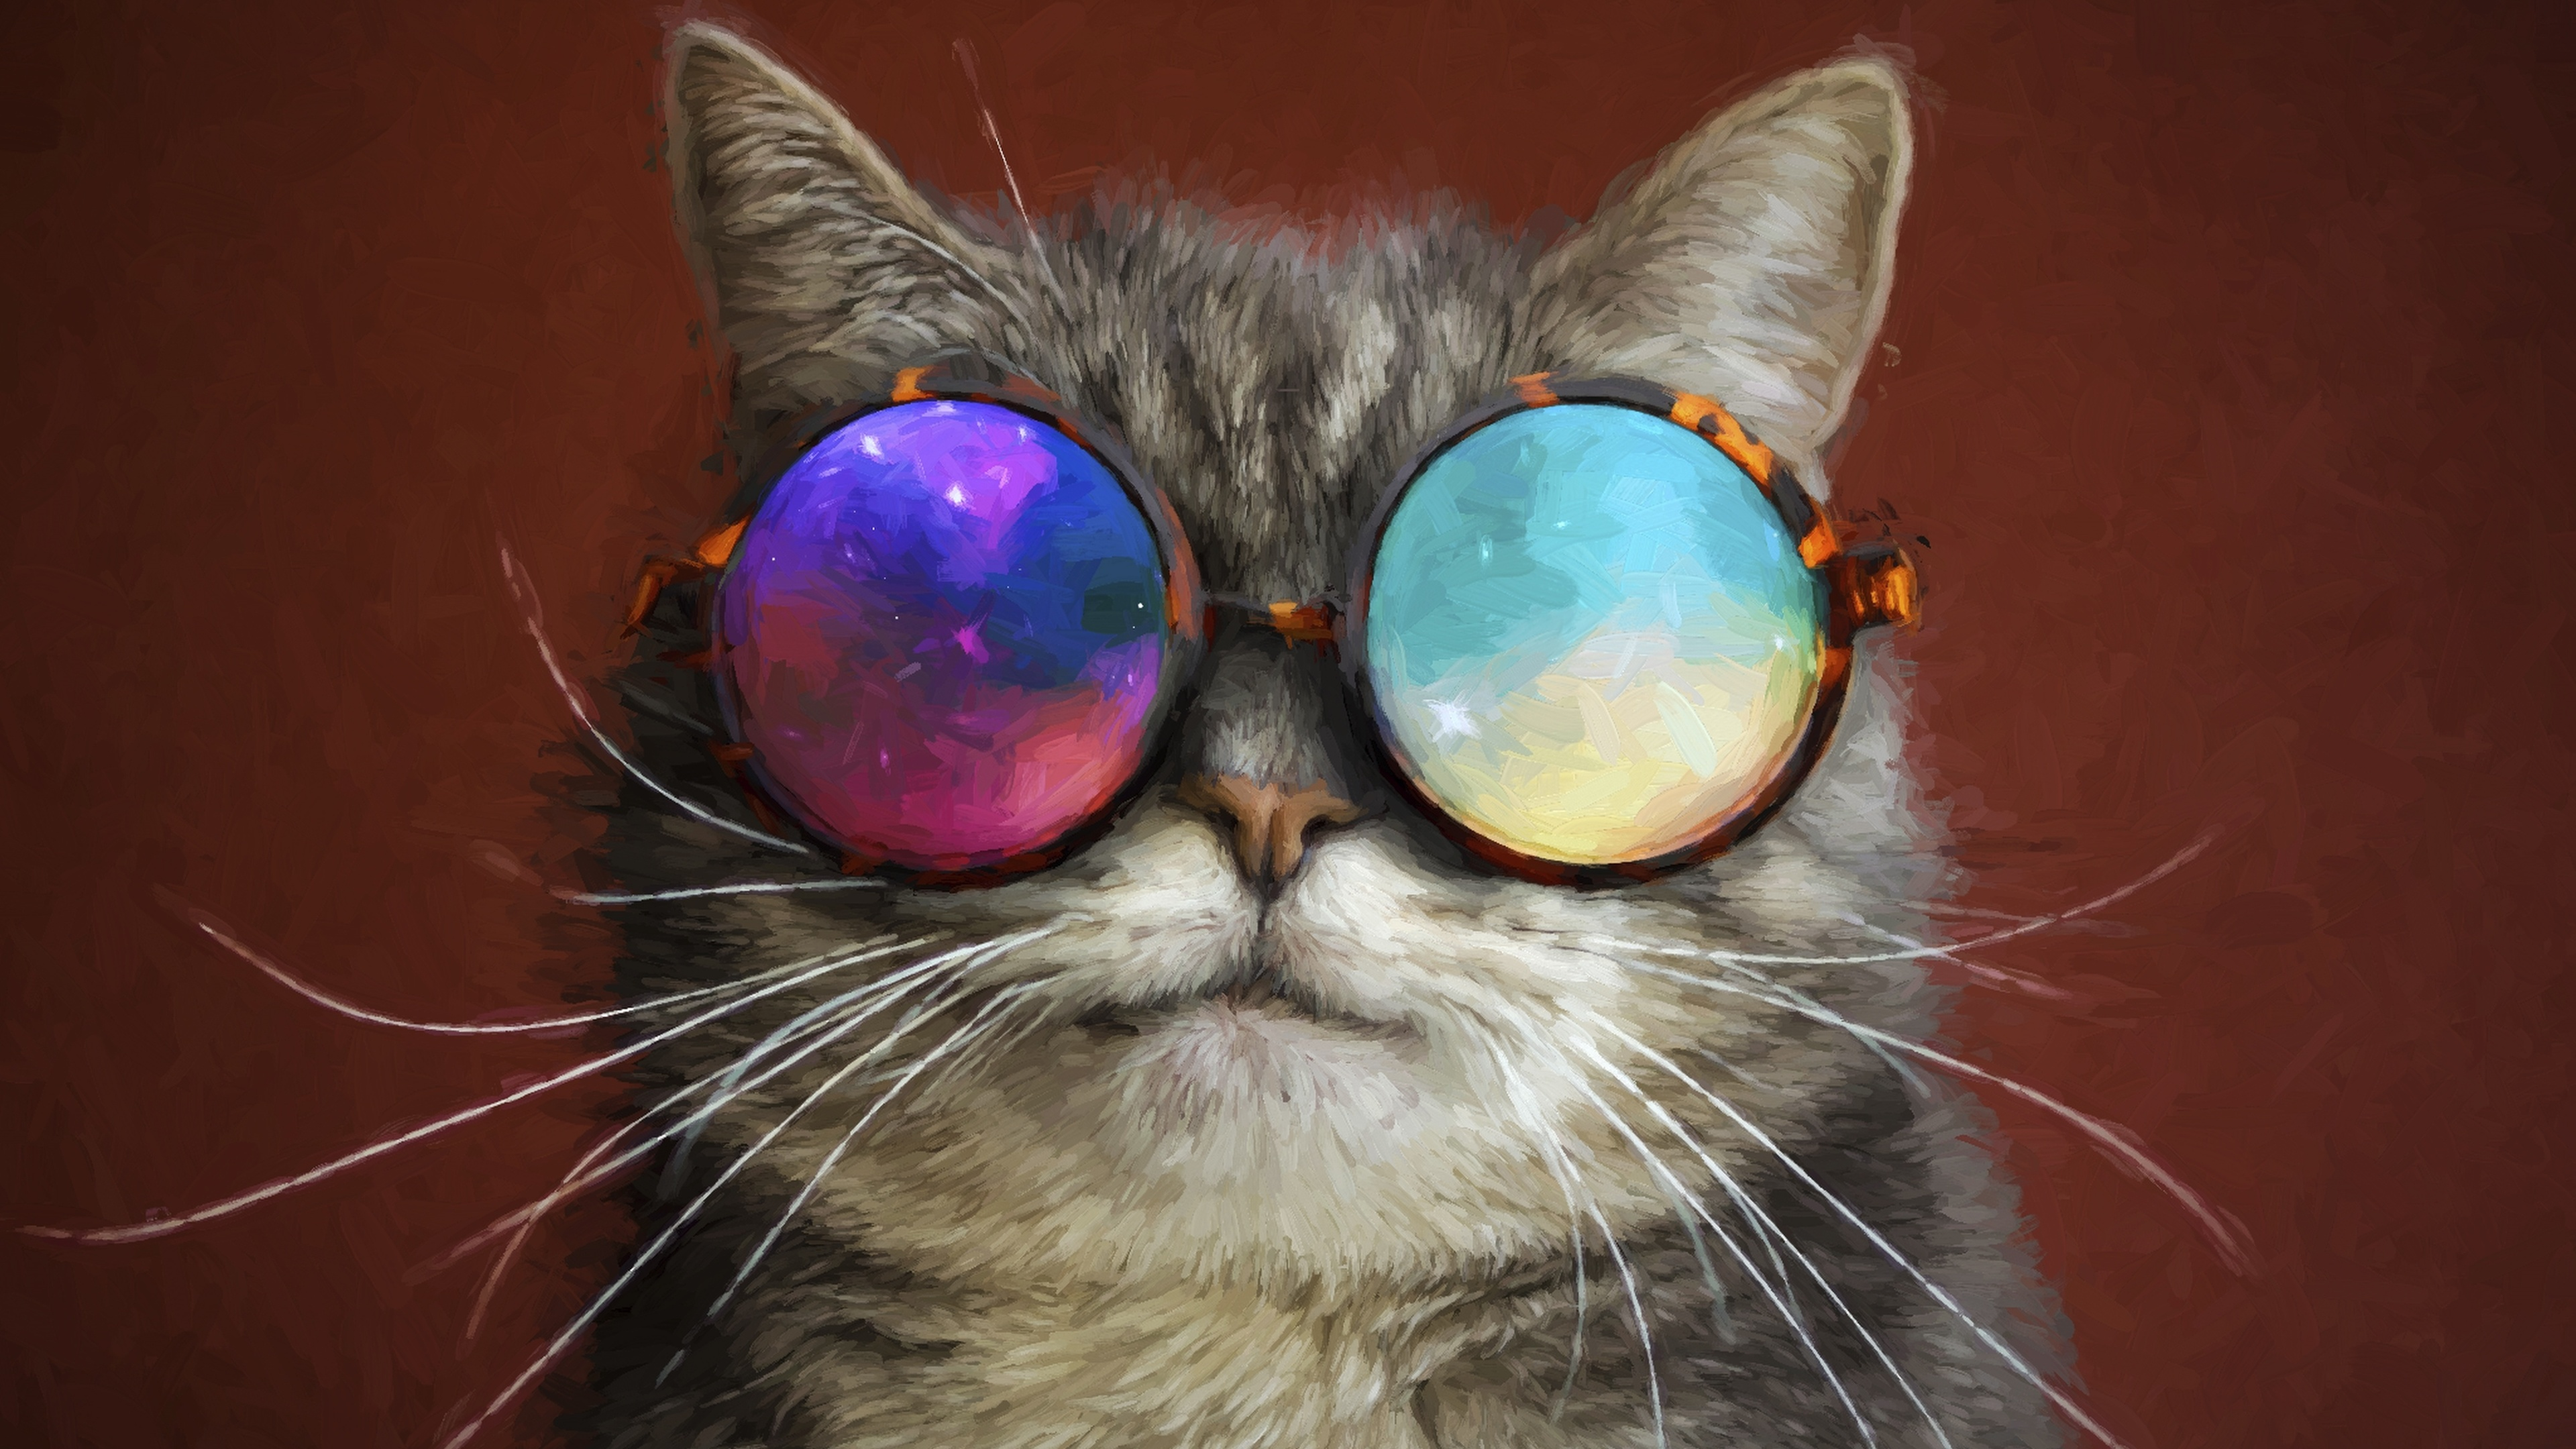 cat glasses party cool painting 1542238776 - Cat Glasses Party Cool Painting - painting wallpapers, hd-wallpapers, digital art wallpapers, cat wallpapers, artwork wallpapers, artist wallpapers, animals wallpapers, 4k-wallpapers